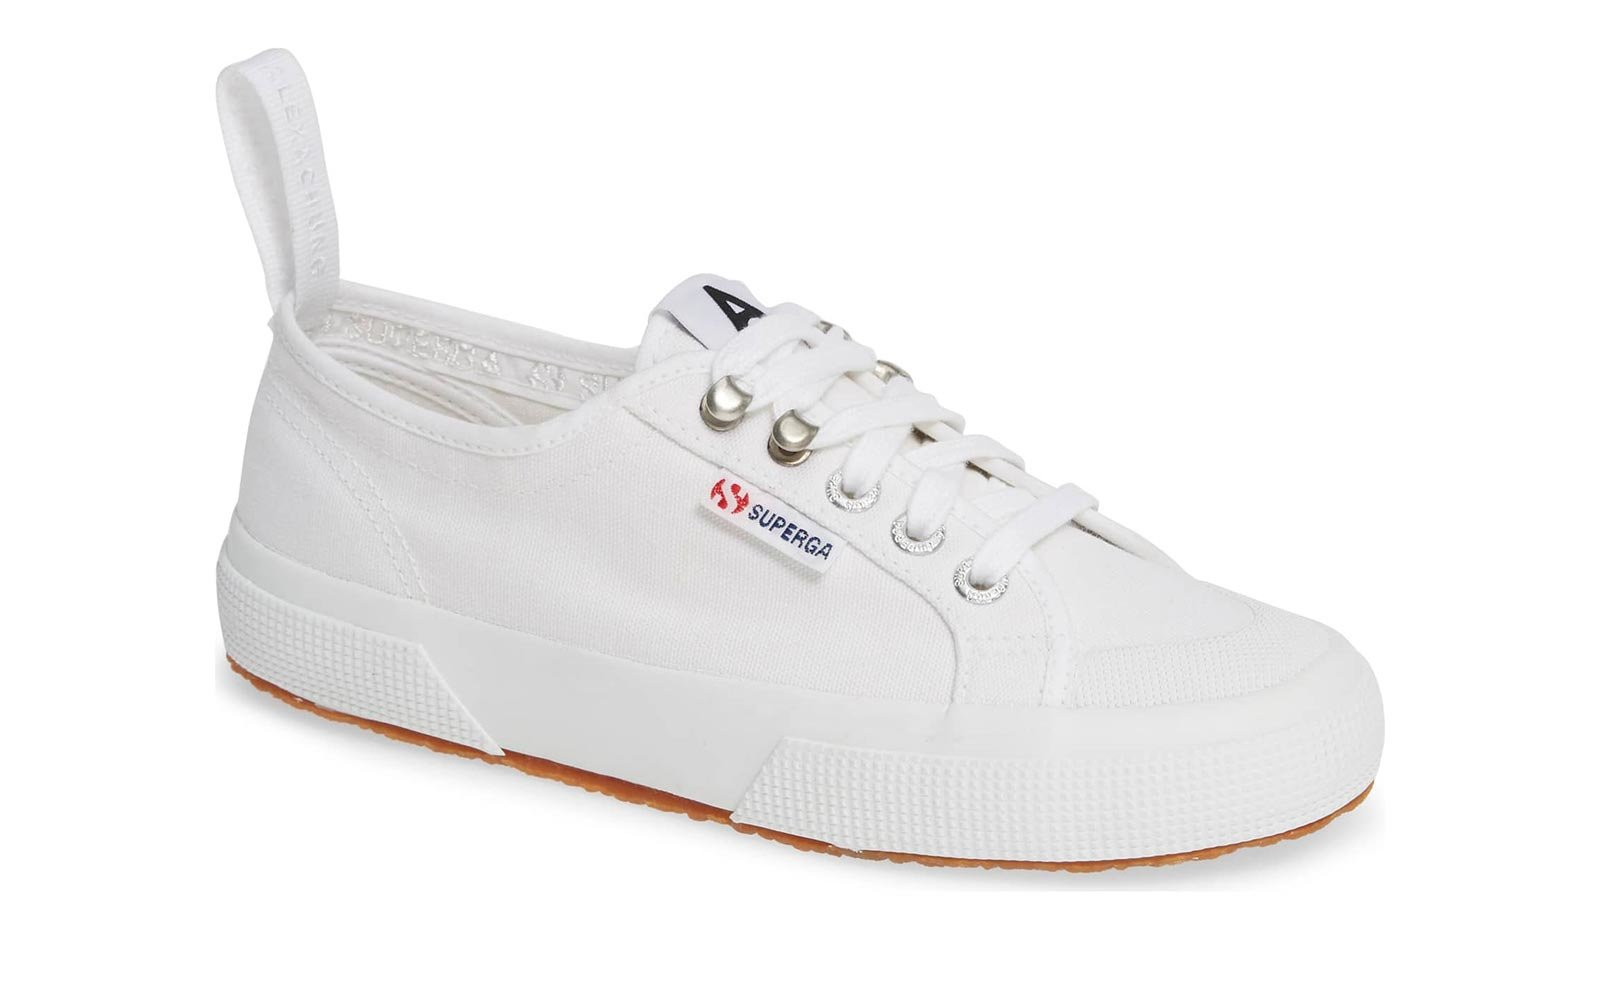 c2cdd7e2d11af8 17 White Sneakers for Women That Go With Everything